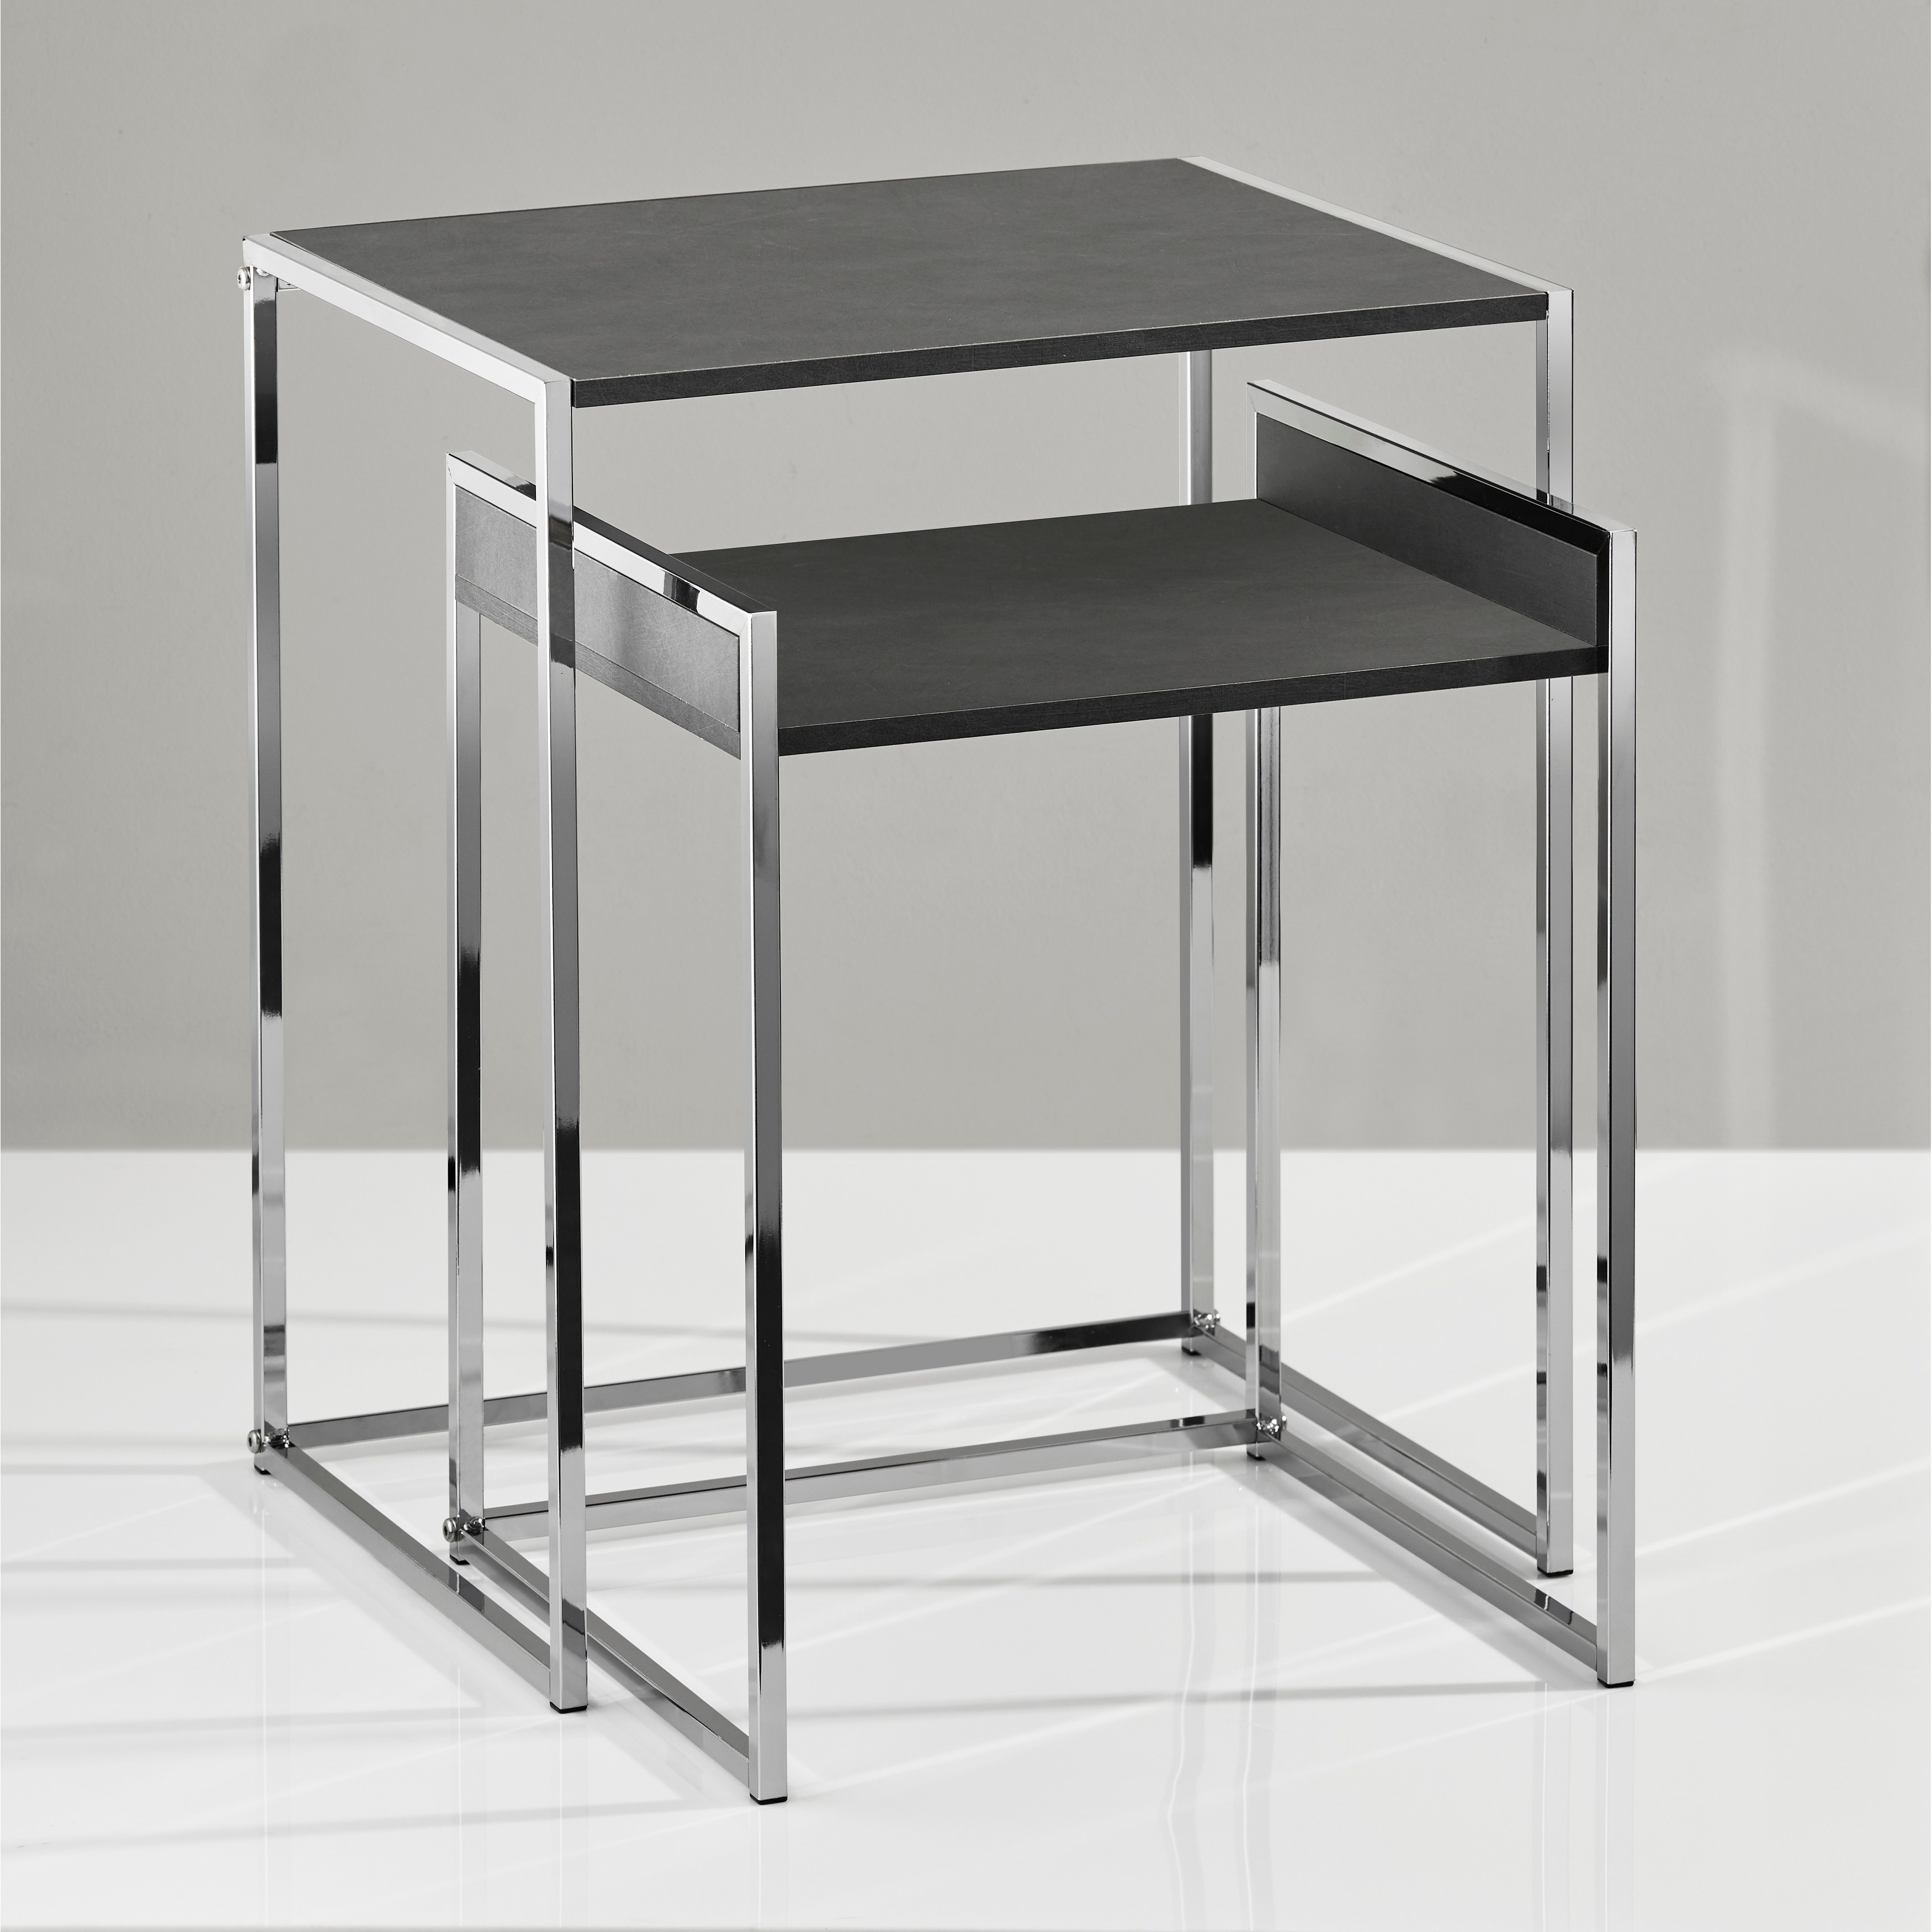 adesso ryder nesting tables free shipping today small accent table target student desk with basket drawers hotel lamps and usb umbrella base weights smoked glass coffee mirrored